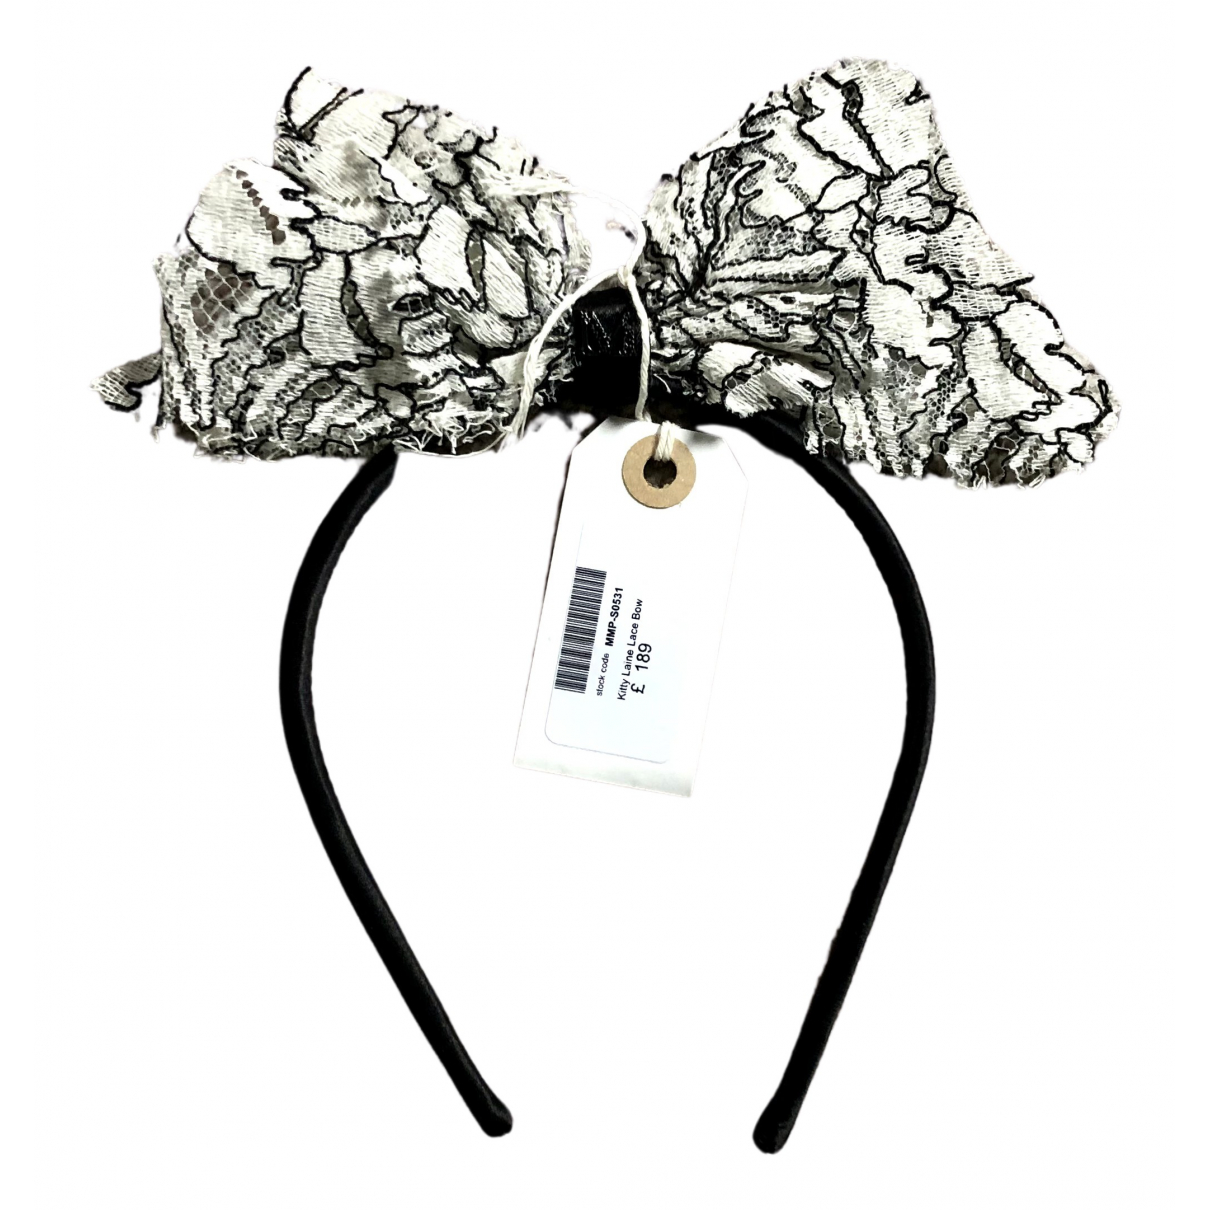 Maison Michel N Anthracite Cloth Hair accessories for Women M International